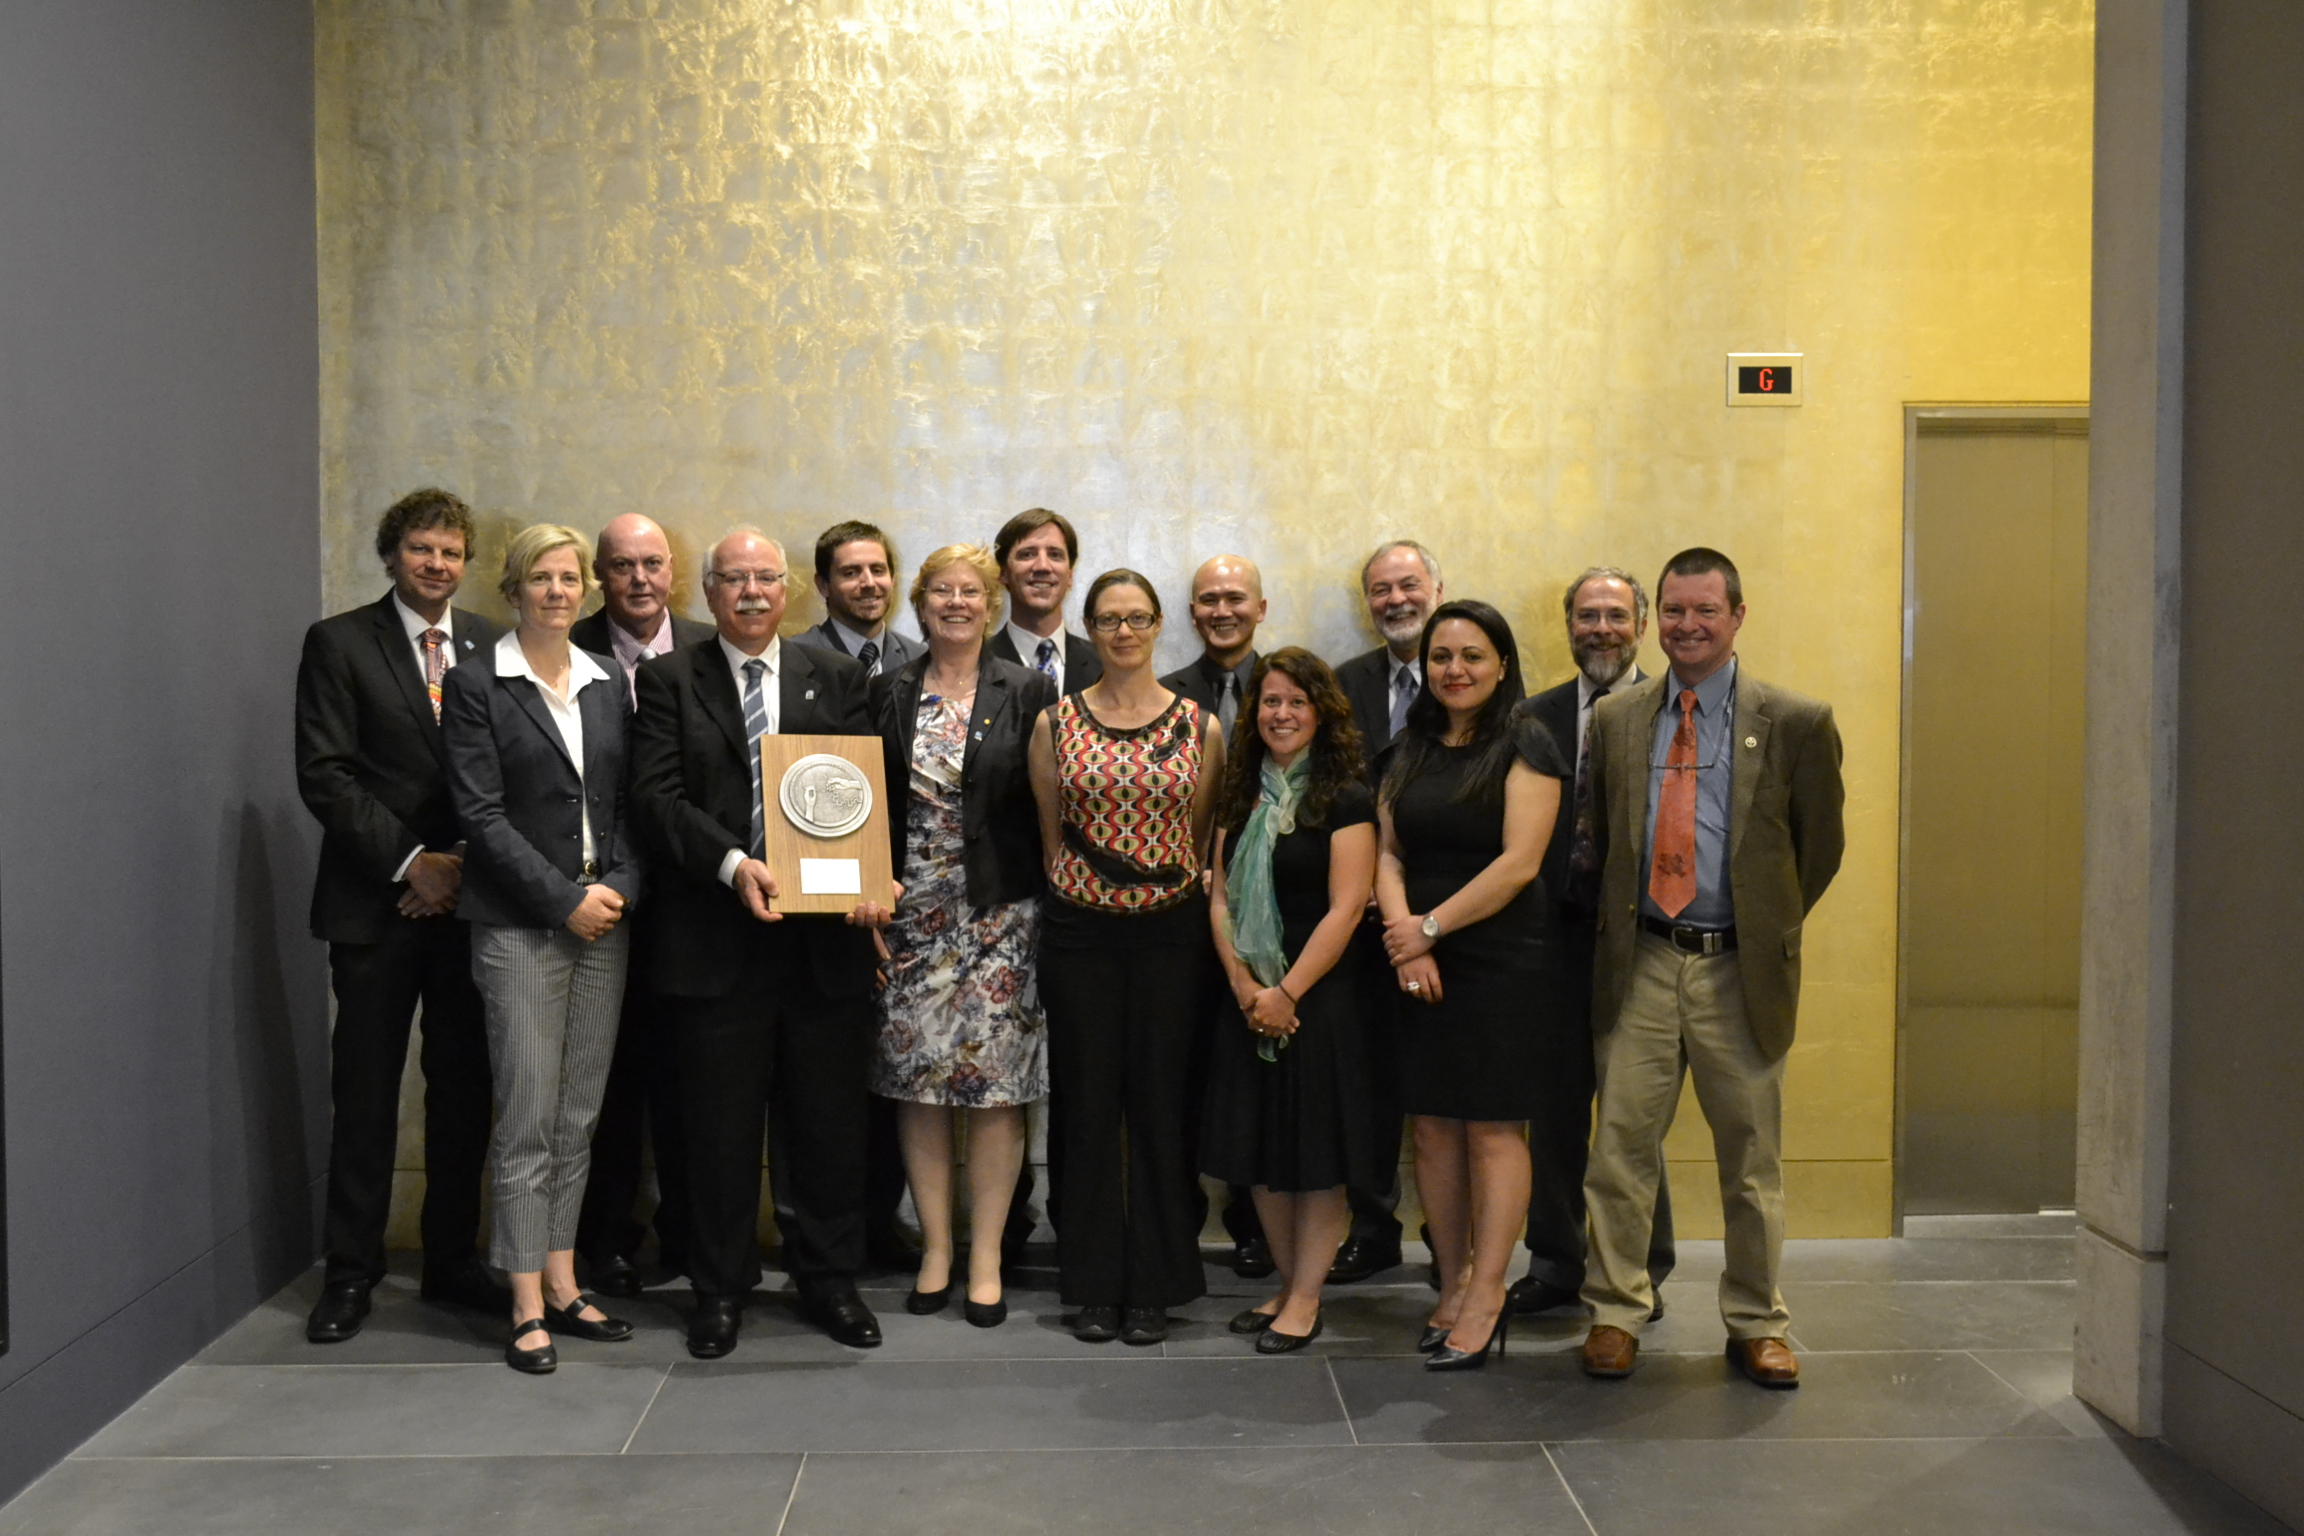 Group photo of the 2014 CSIRO Chairman's Medal winning team.